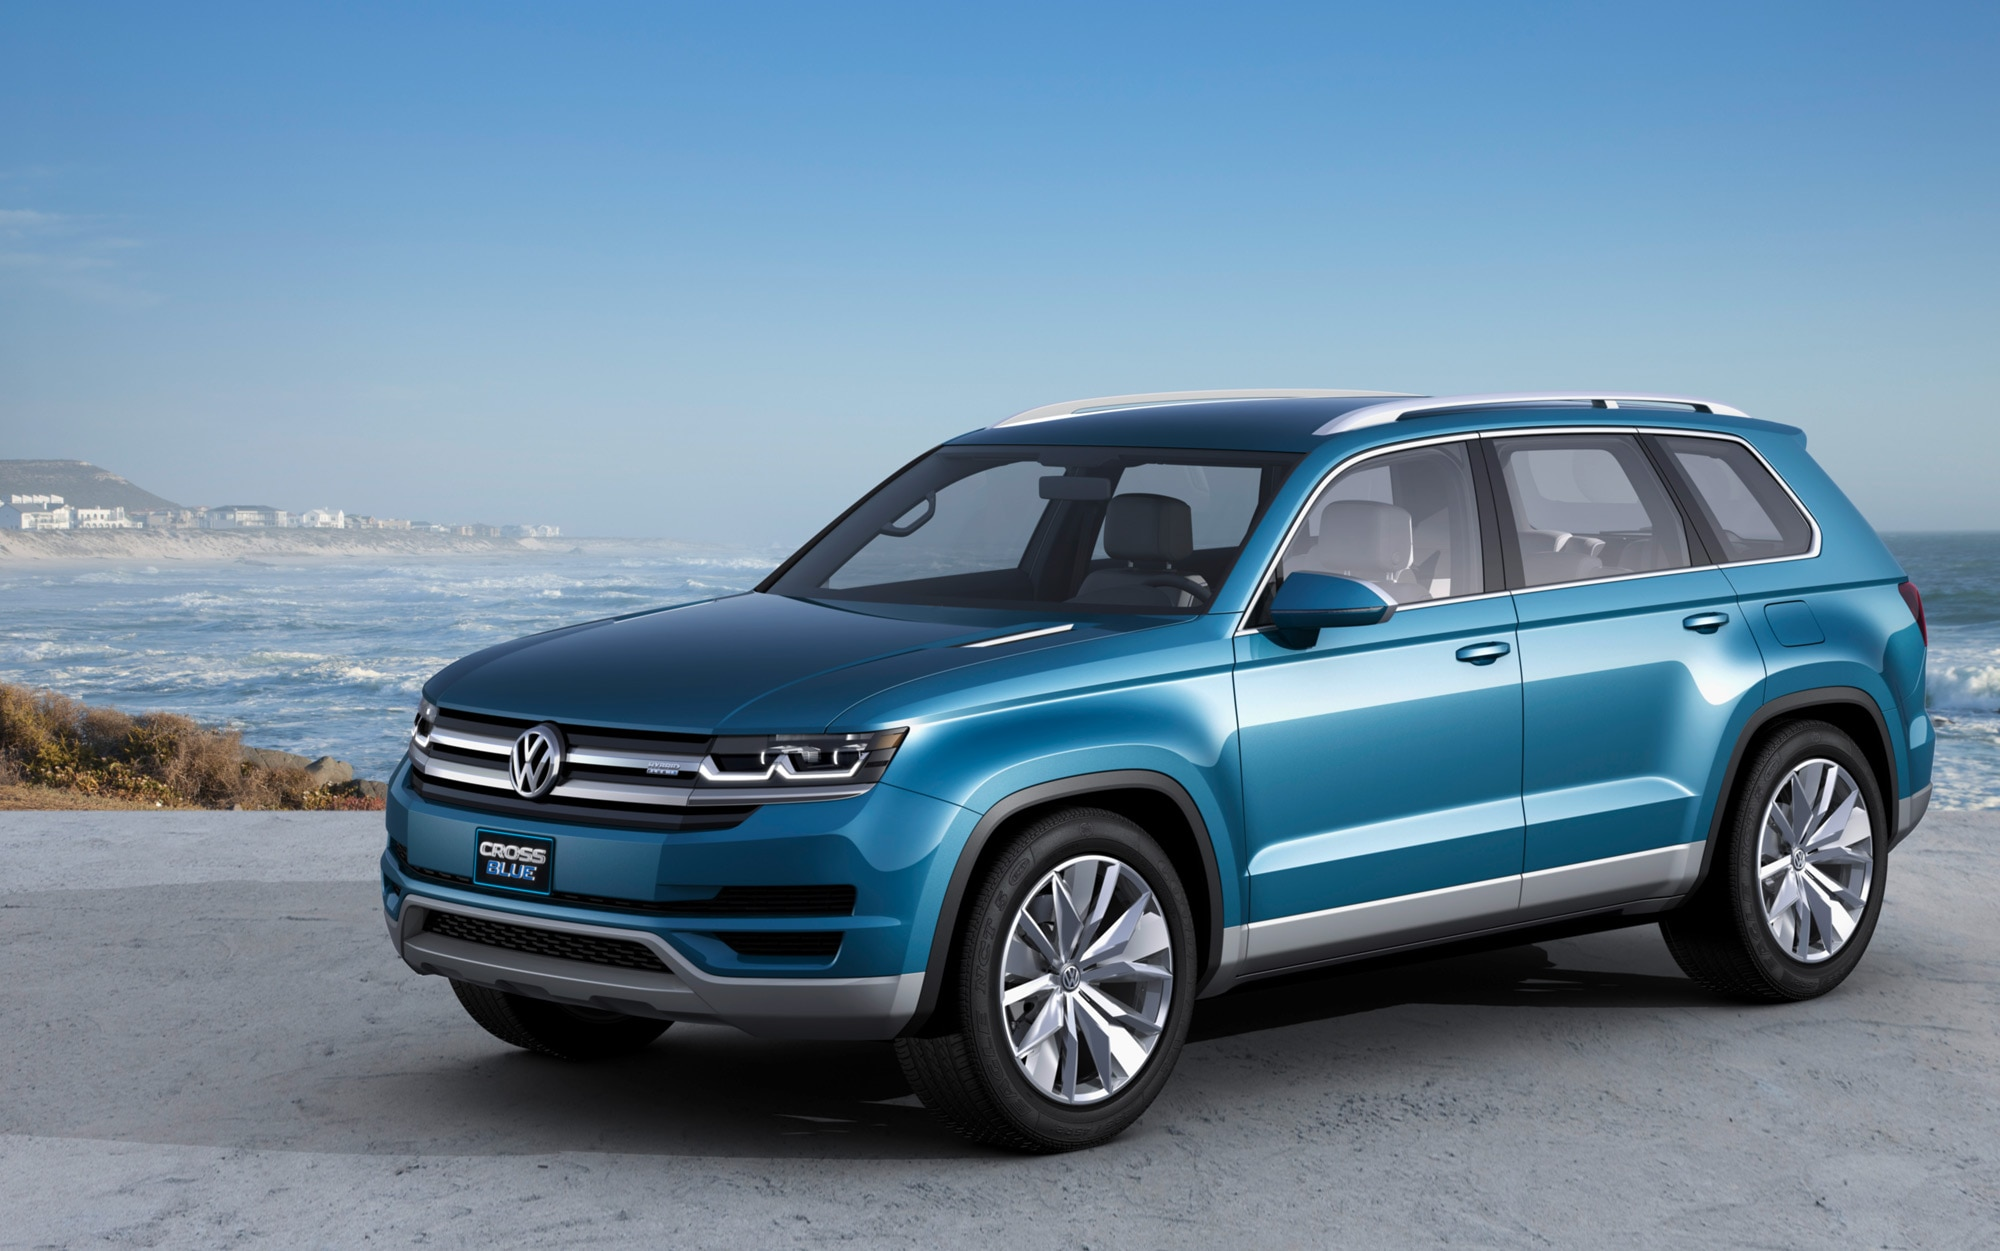 Volkswagen Finally Confirms ThreeRow SUV Coming in 2016